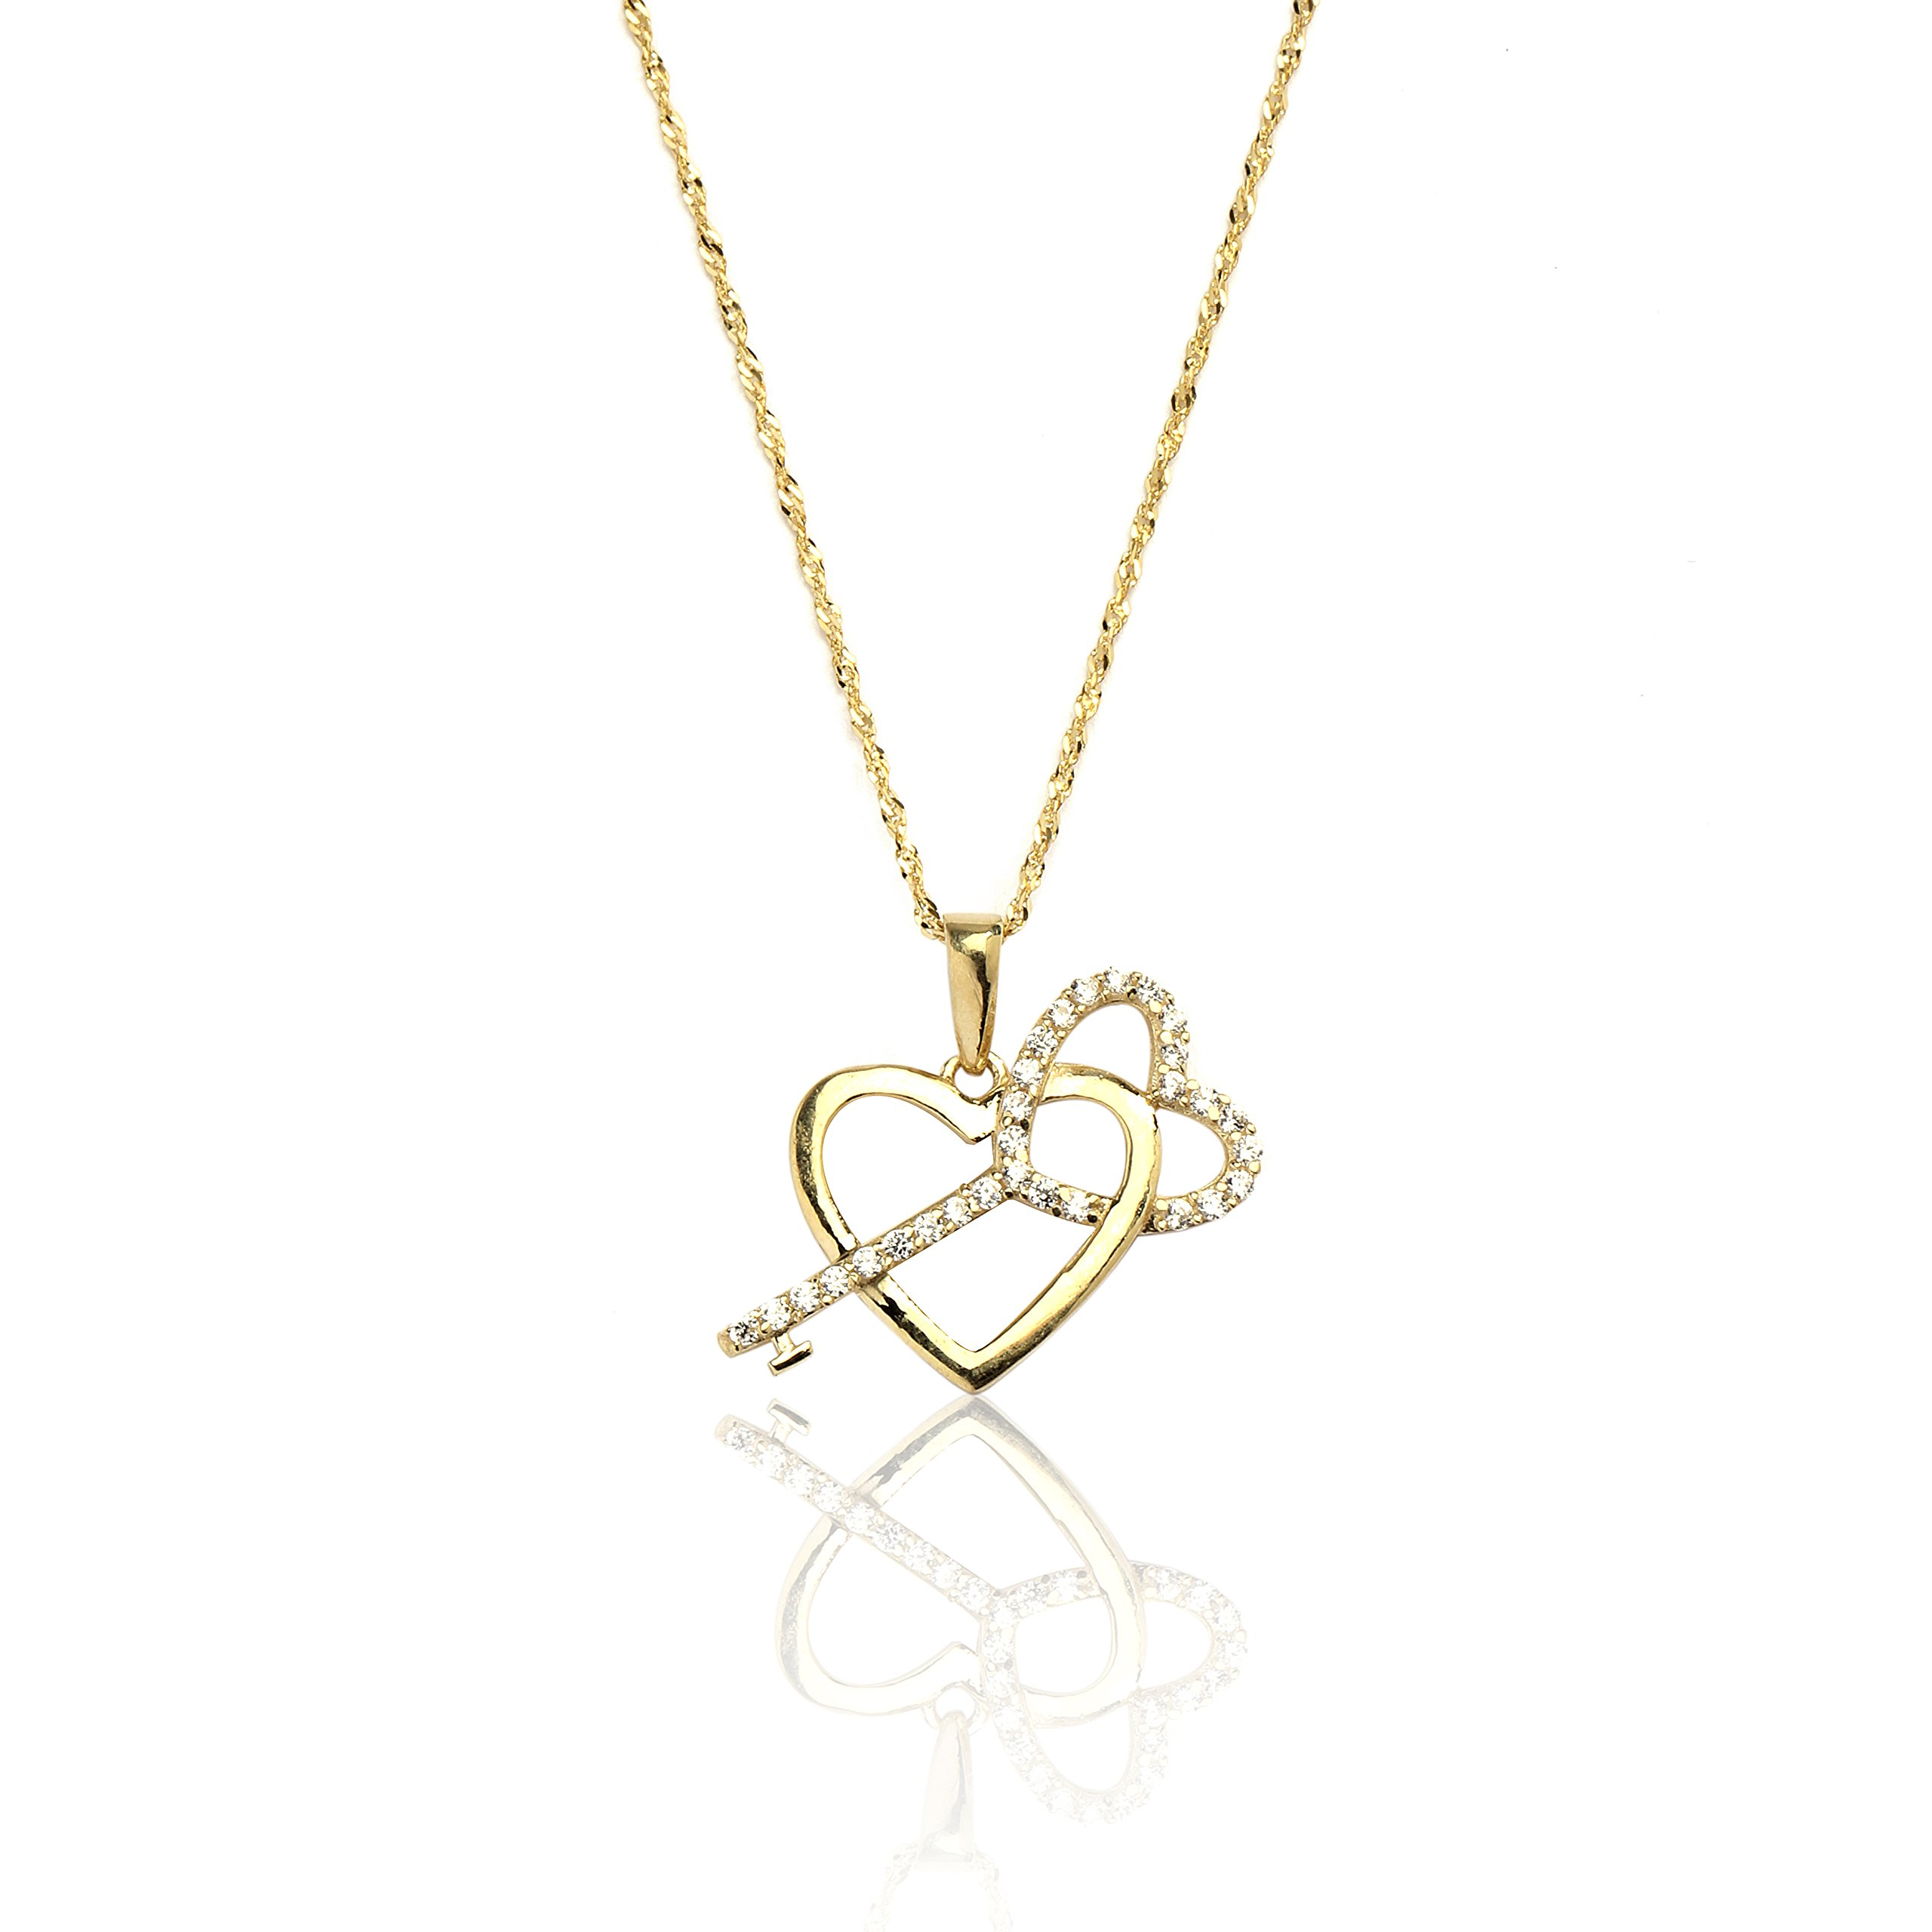 18'' 10k Yellow Gold Heart and Key Cubic Zirconia Pendant Necklace for Women and Girls